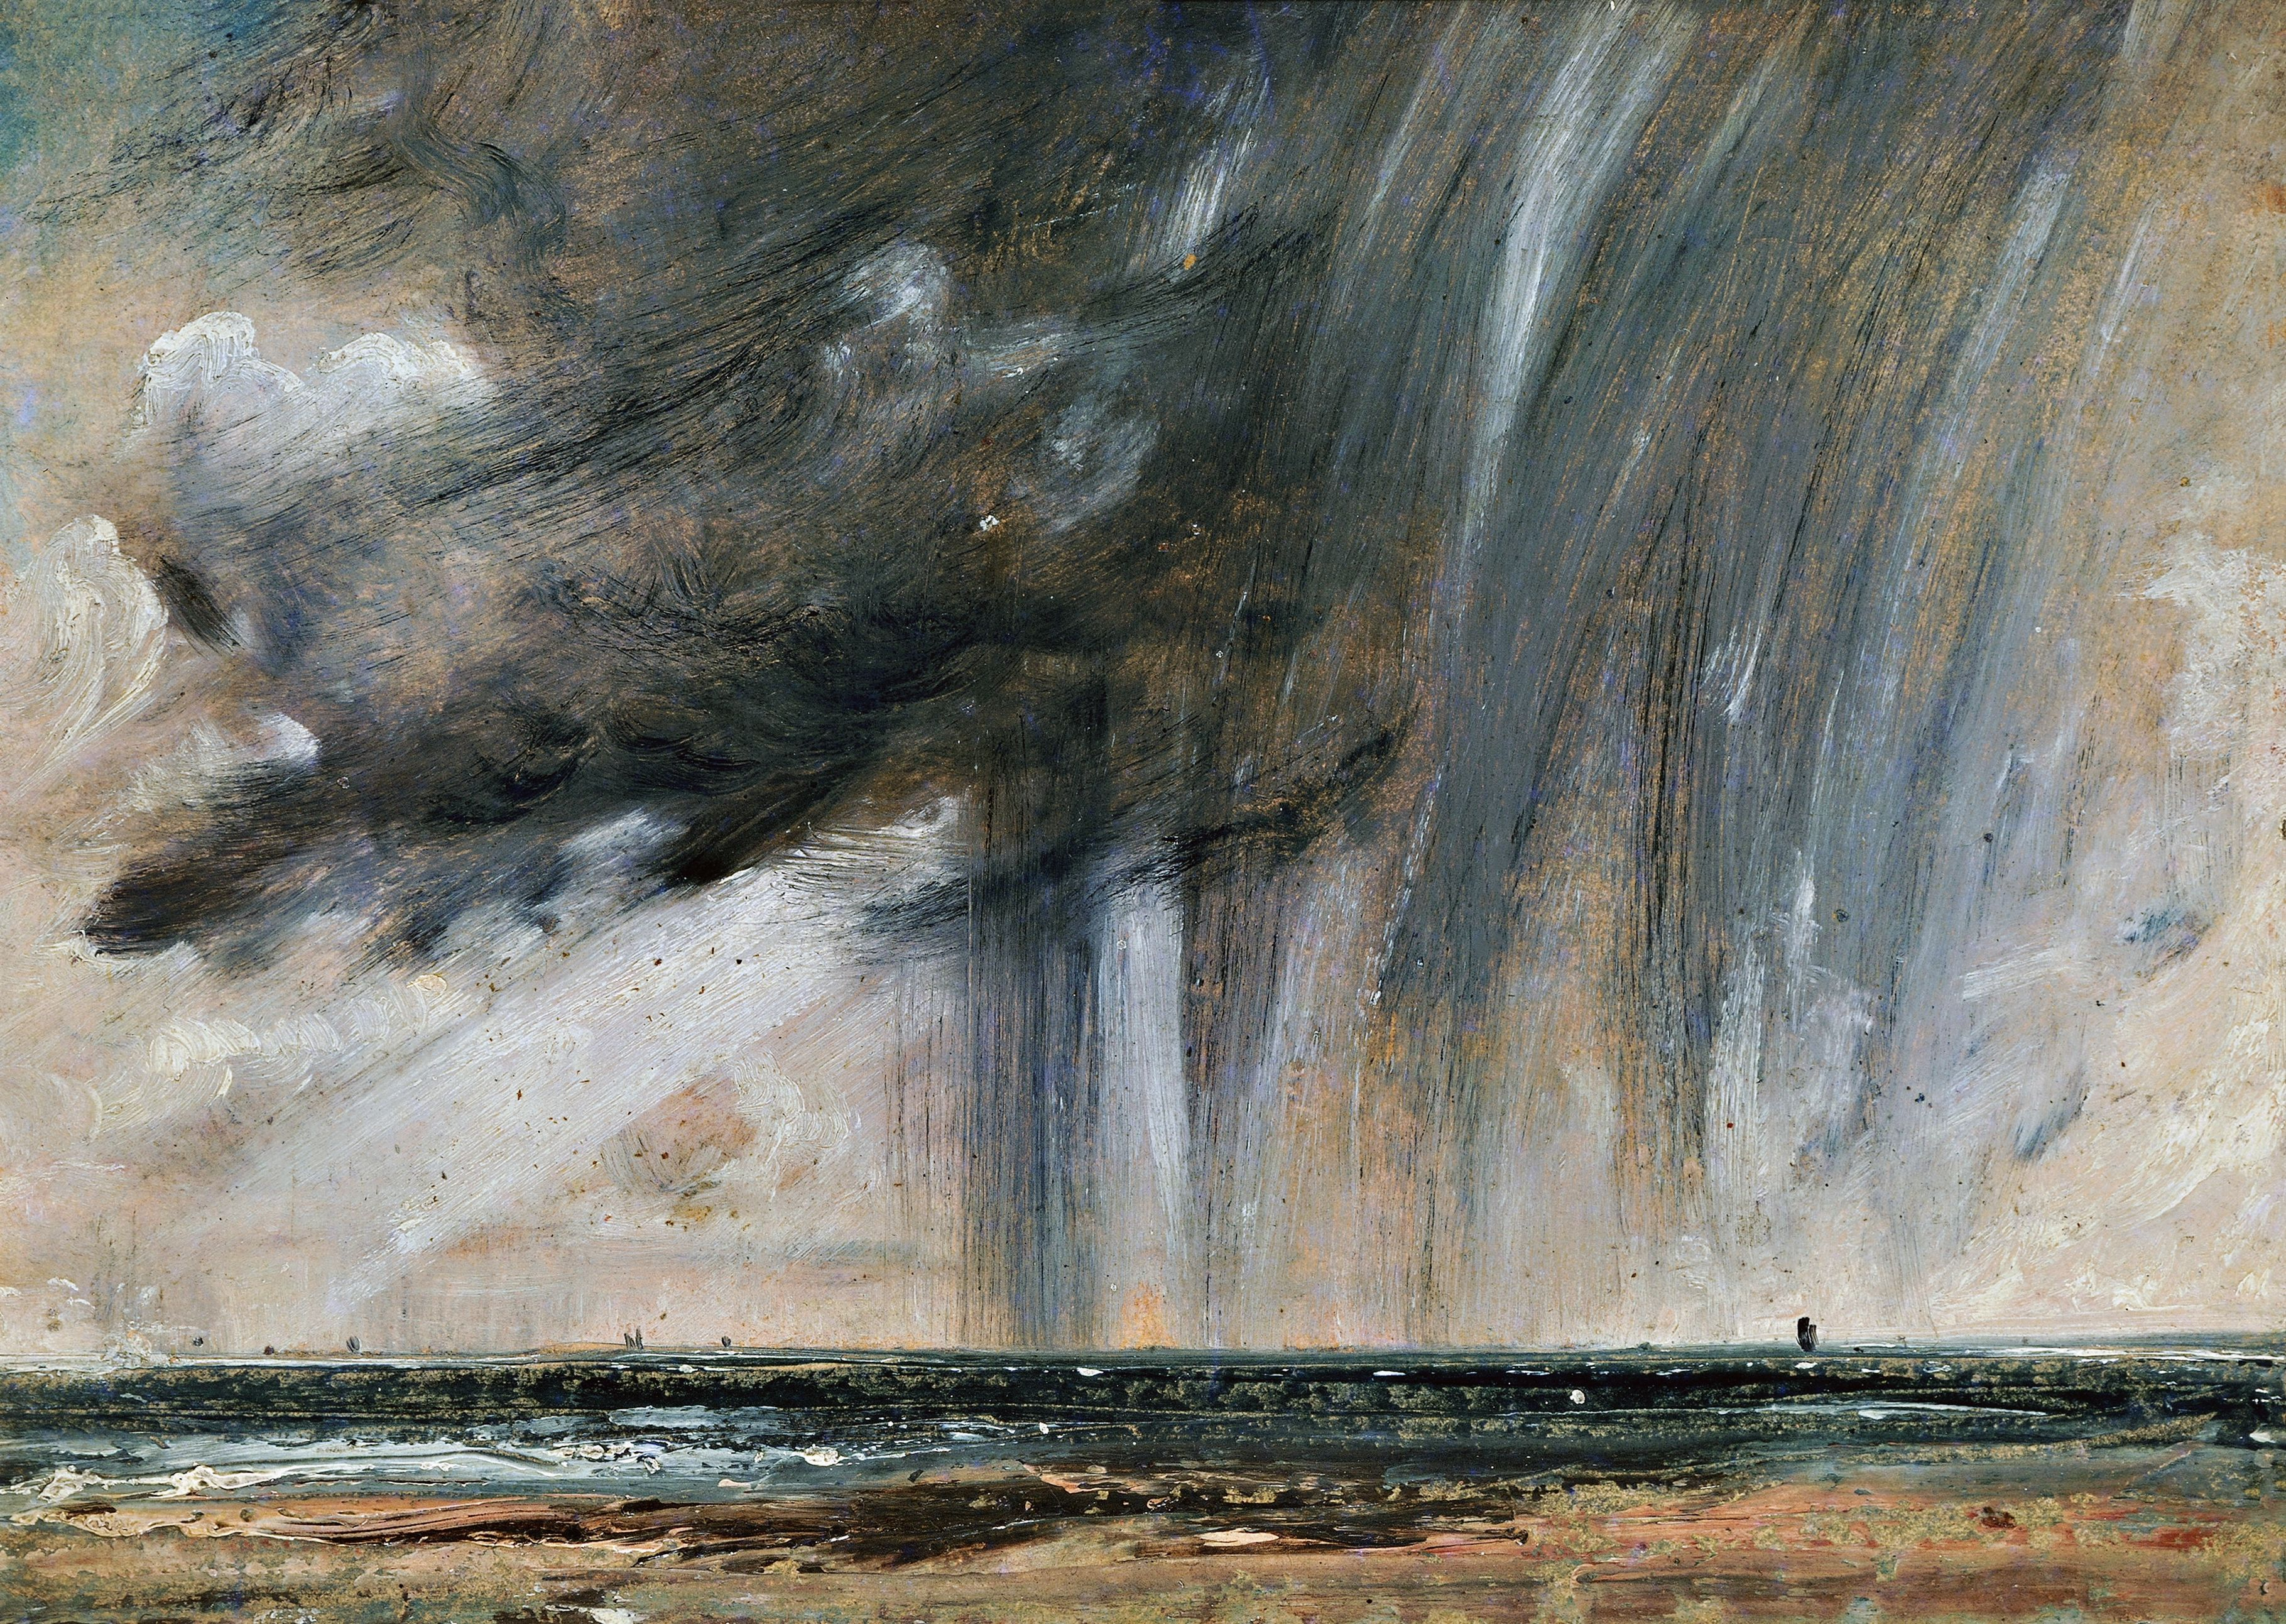 Rainstorm over the sea, seascape study with rainclouds, ca 1824-1828, by John Constable (1776-1837), oil on paper laid on canvas, 22.2x31 cm